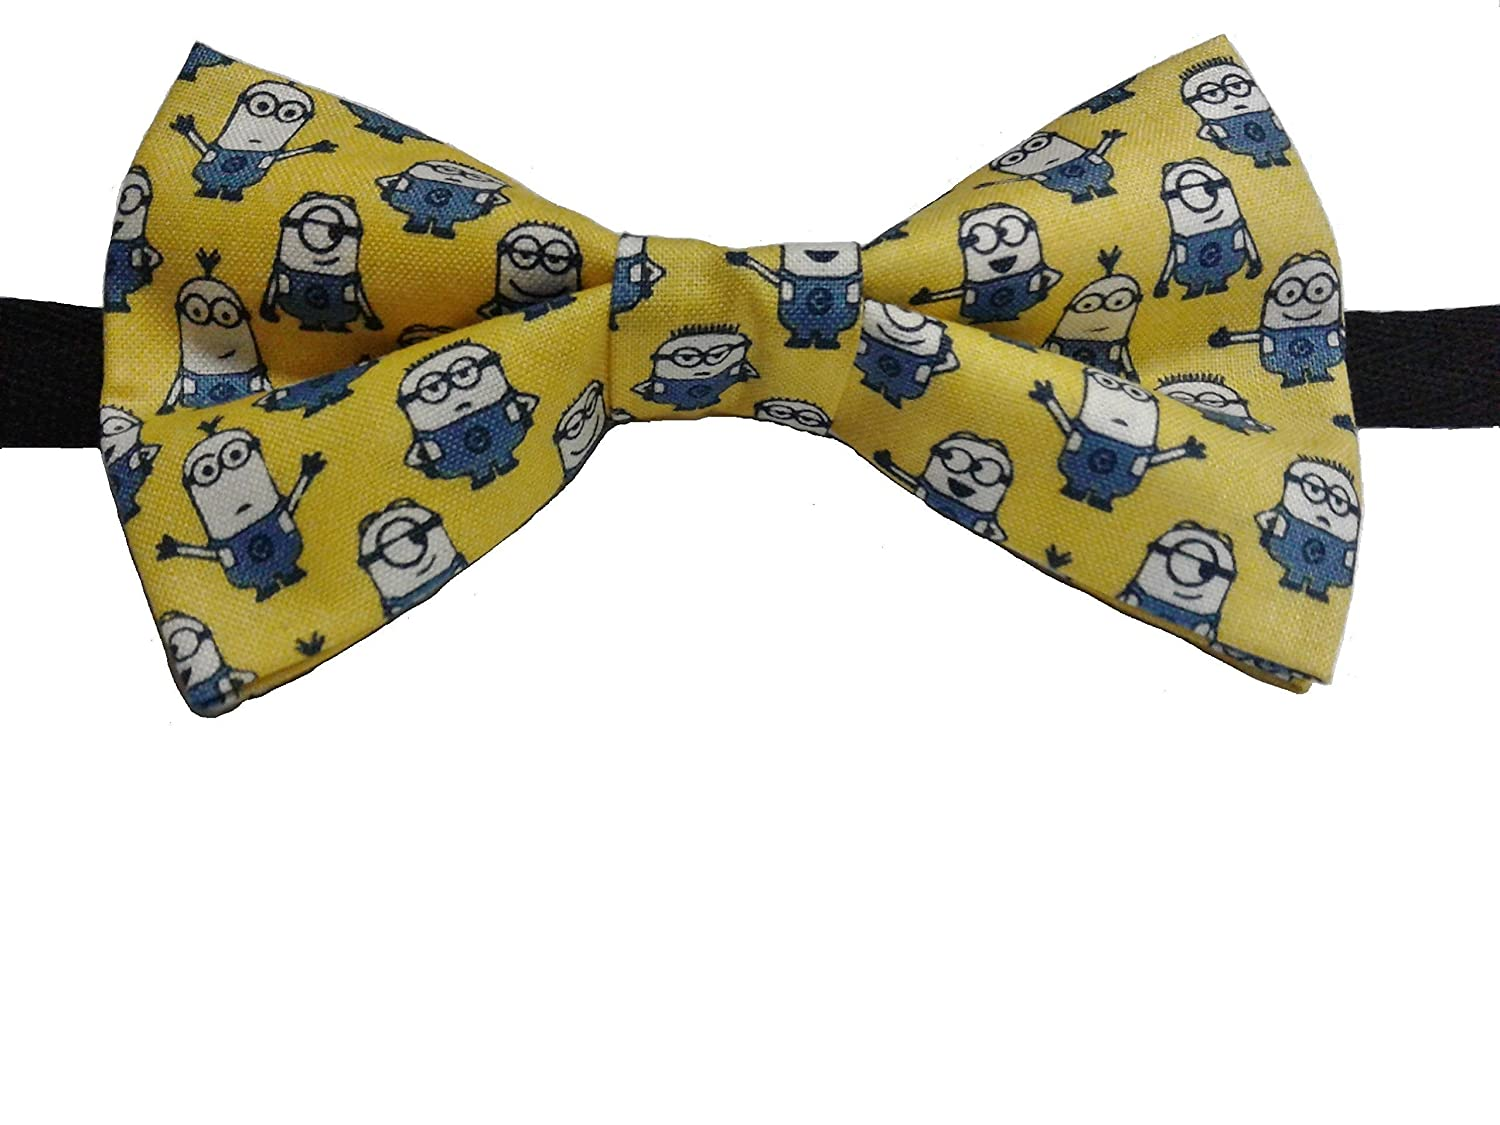 Minions Bow Tie Cotton Various Sizes Big and Tall, Adult, Children